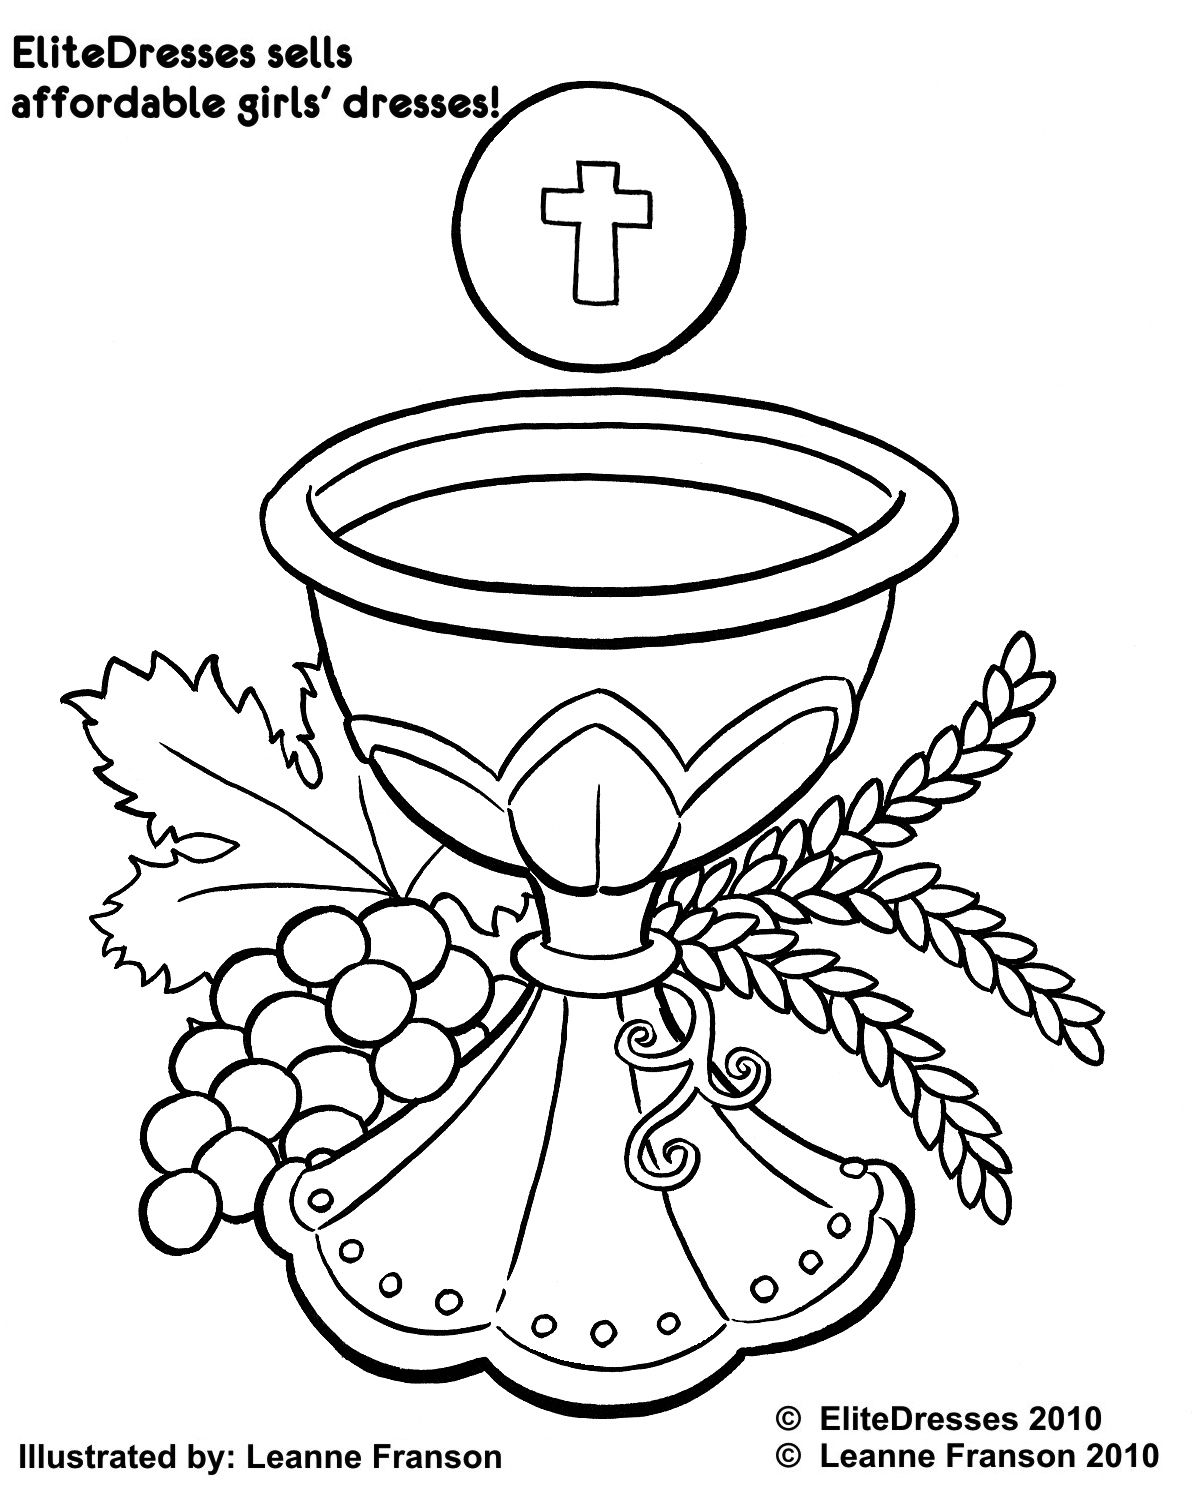 communion coloring pages First Holy Communion Coloring Pages | Printable Coloring Pages  communion coloring pages